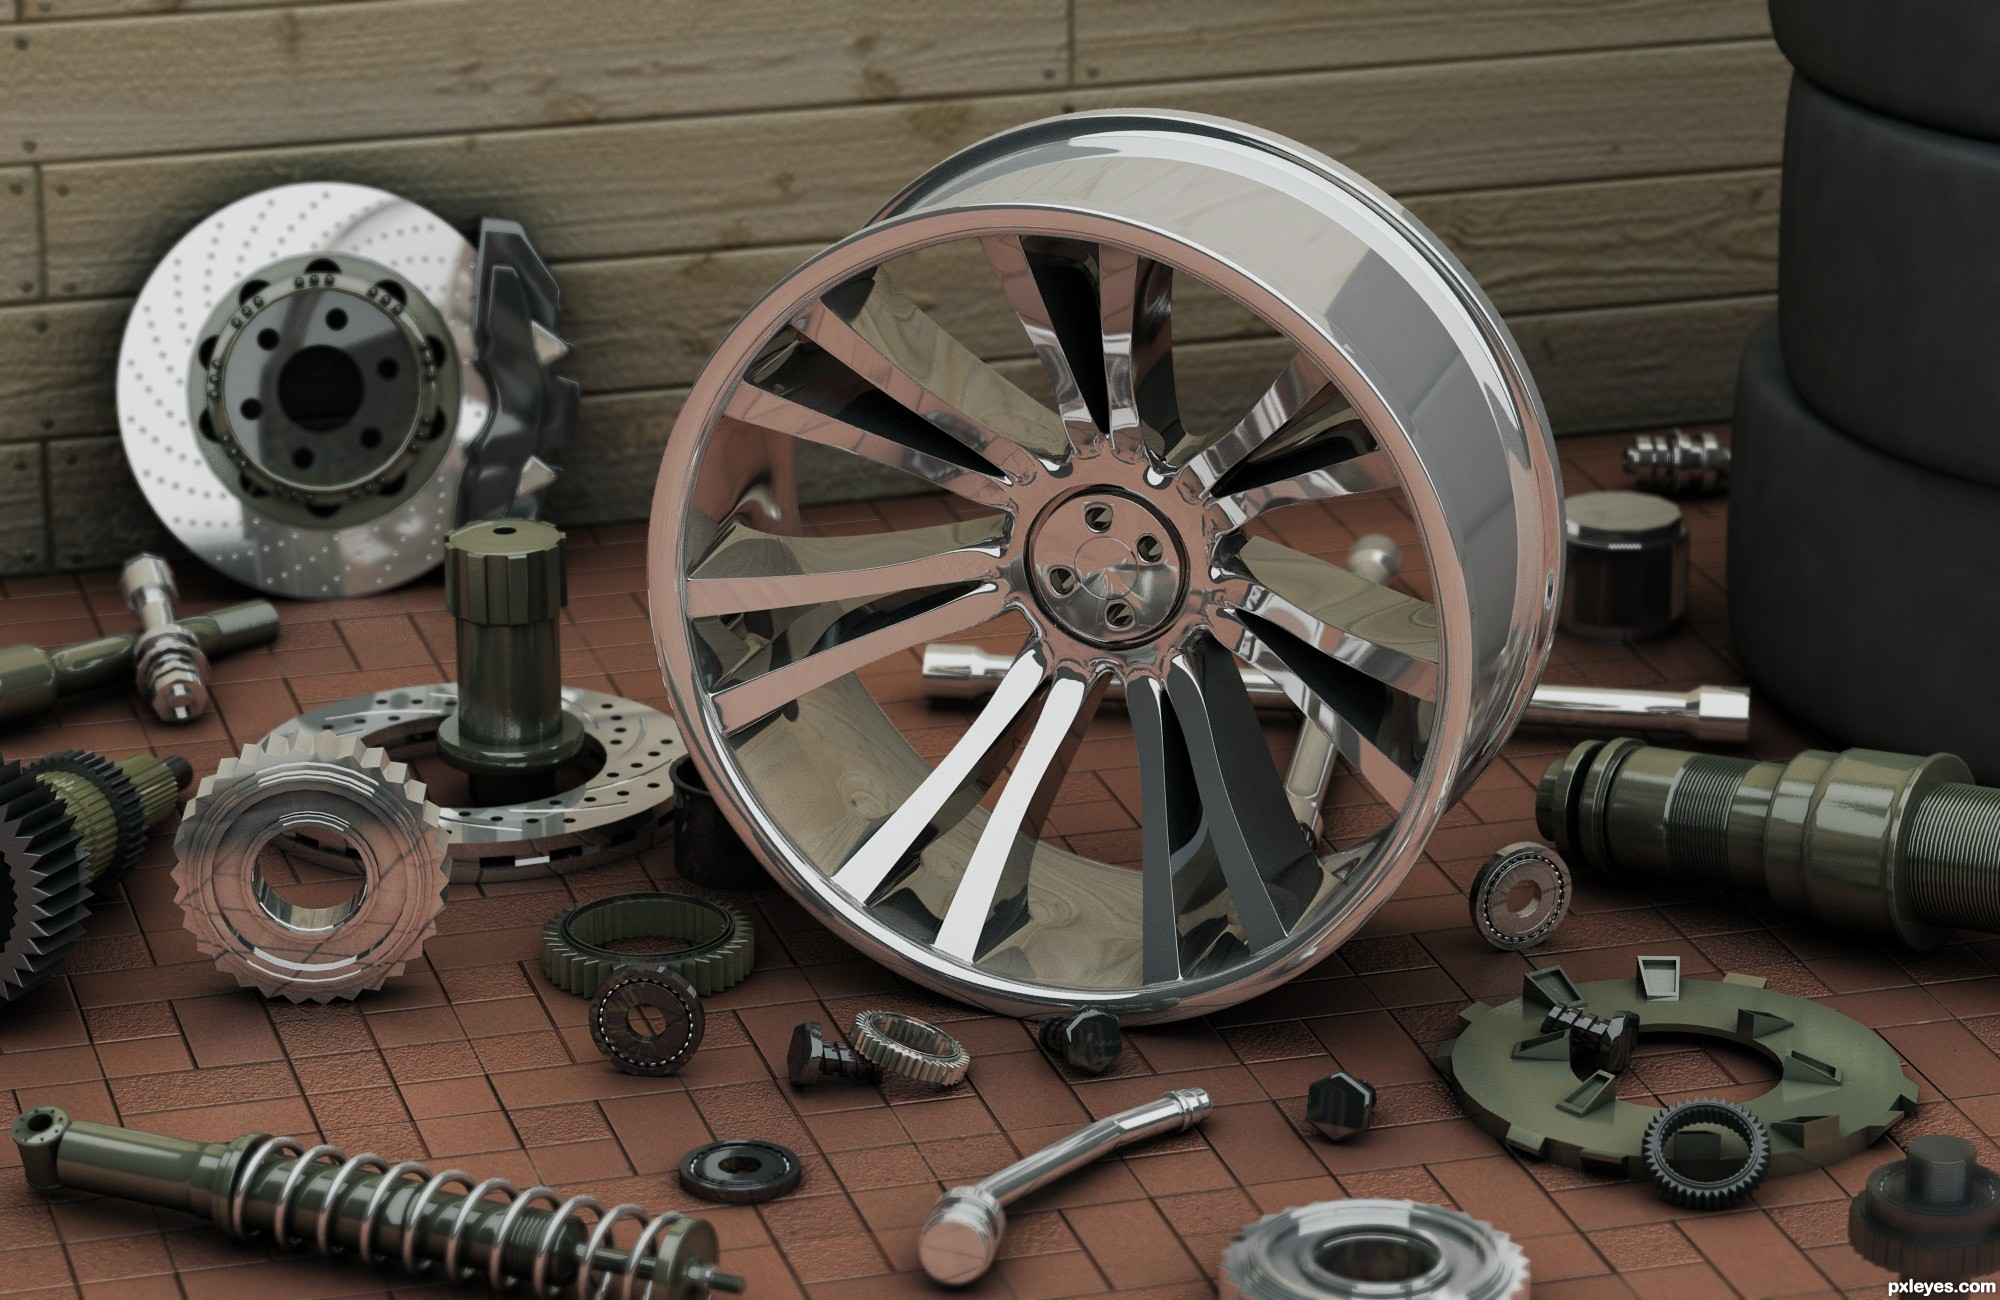 Car parts picture, by trialboj for: second chance 3D contest ...